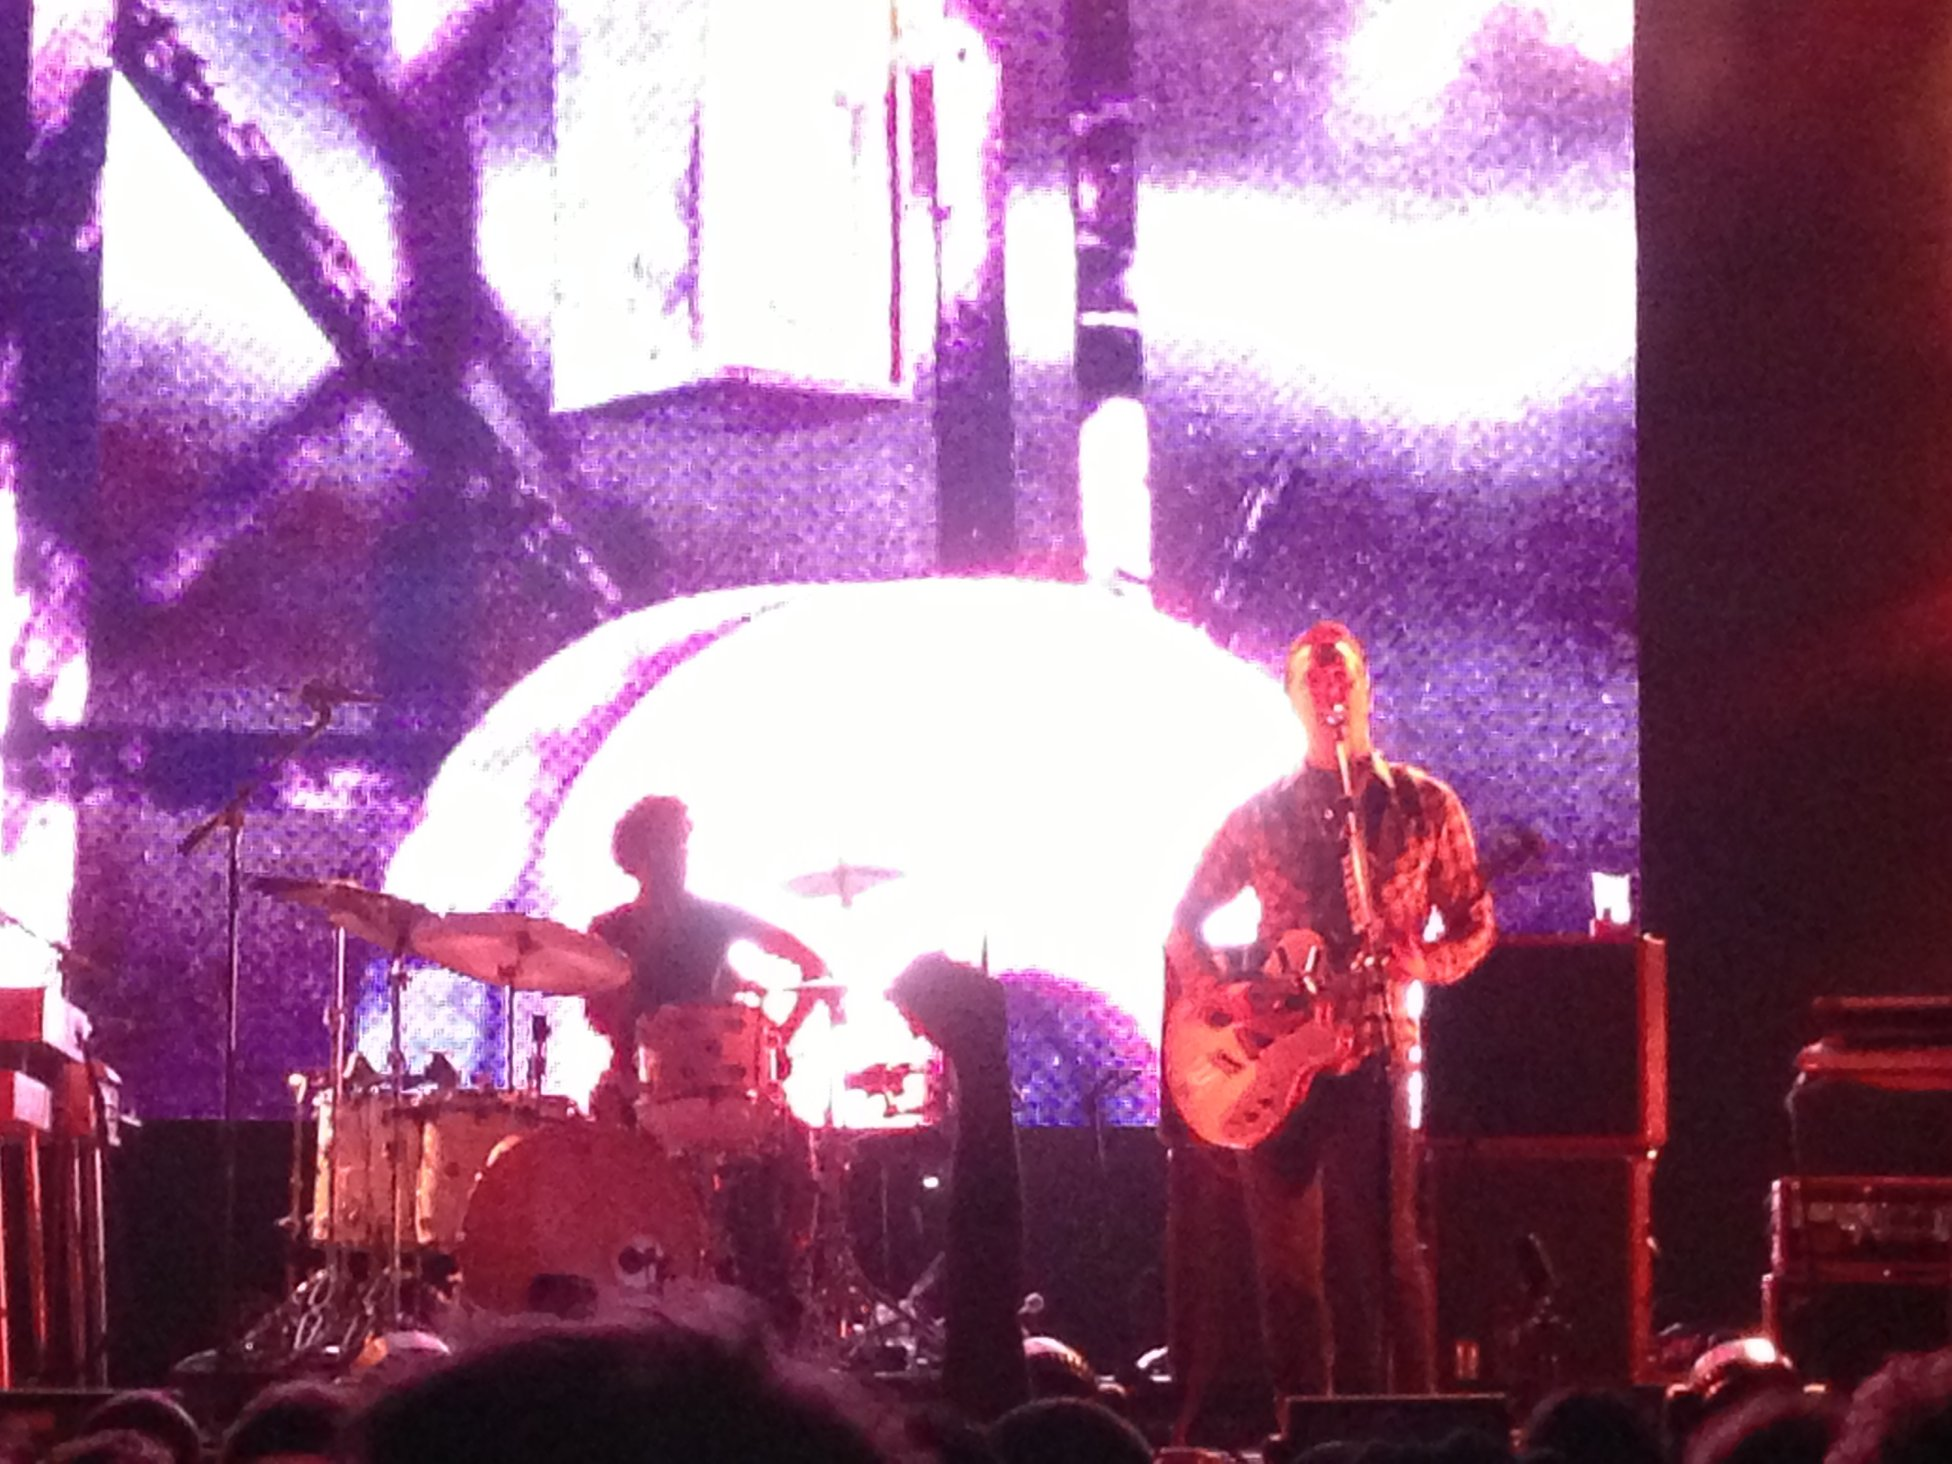 Josh Homme On Guitar With Jon Theodore On Drums